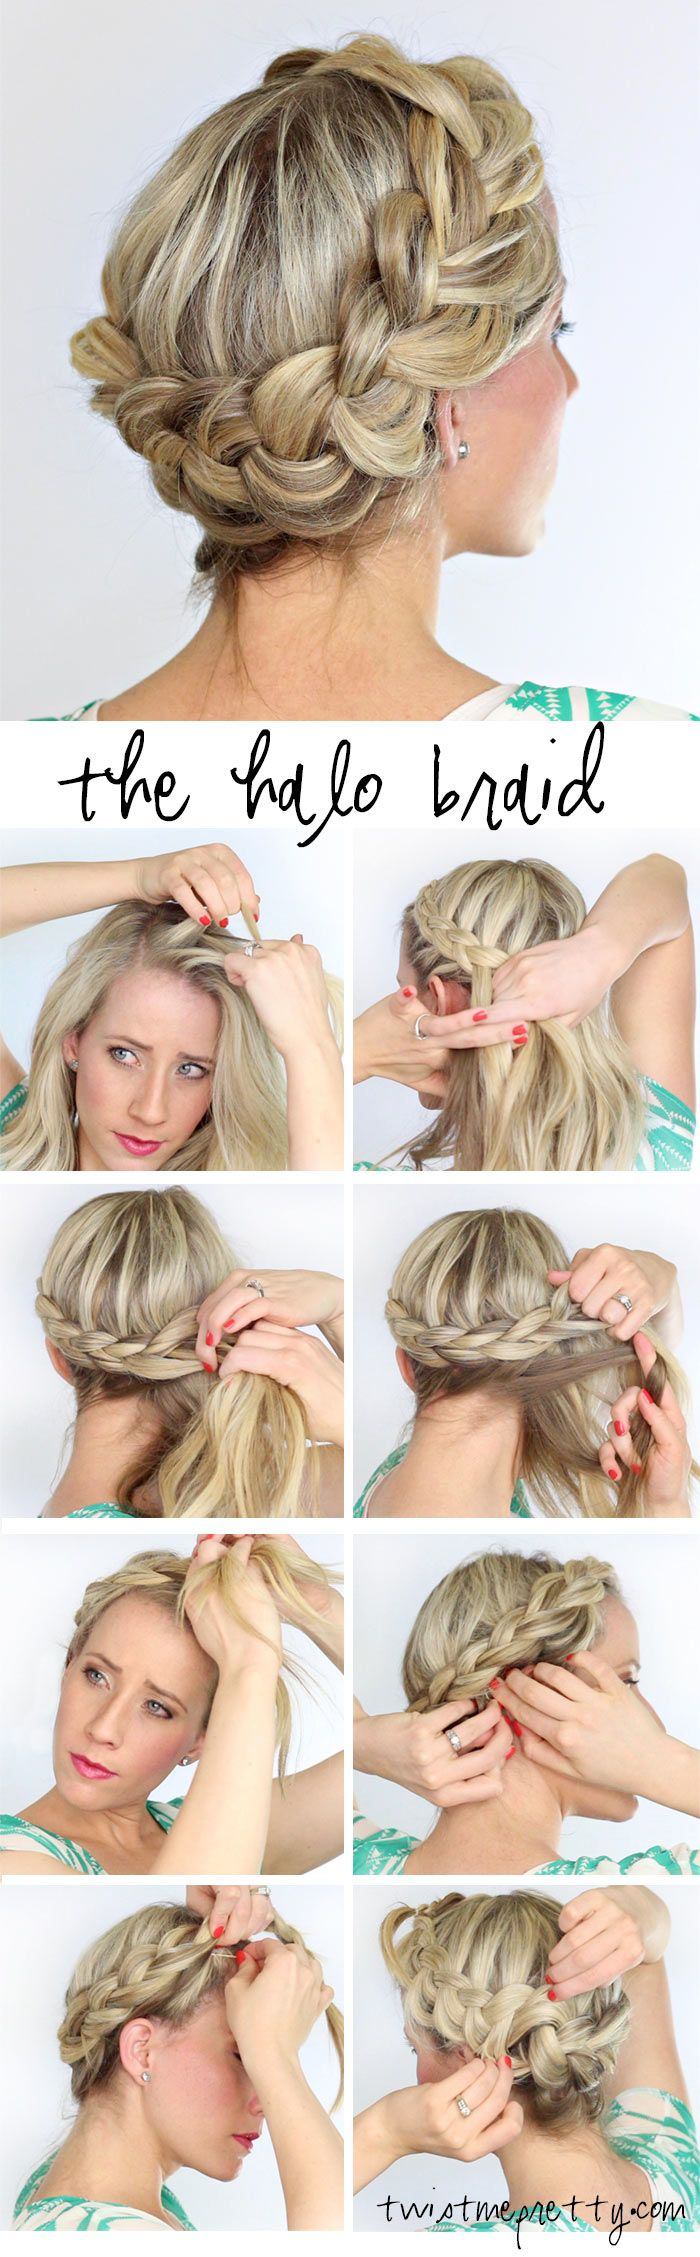 DIY Halo Braid-